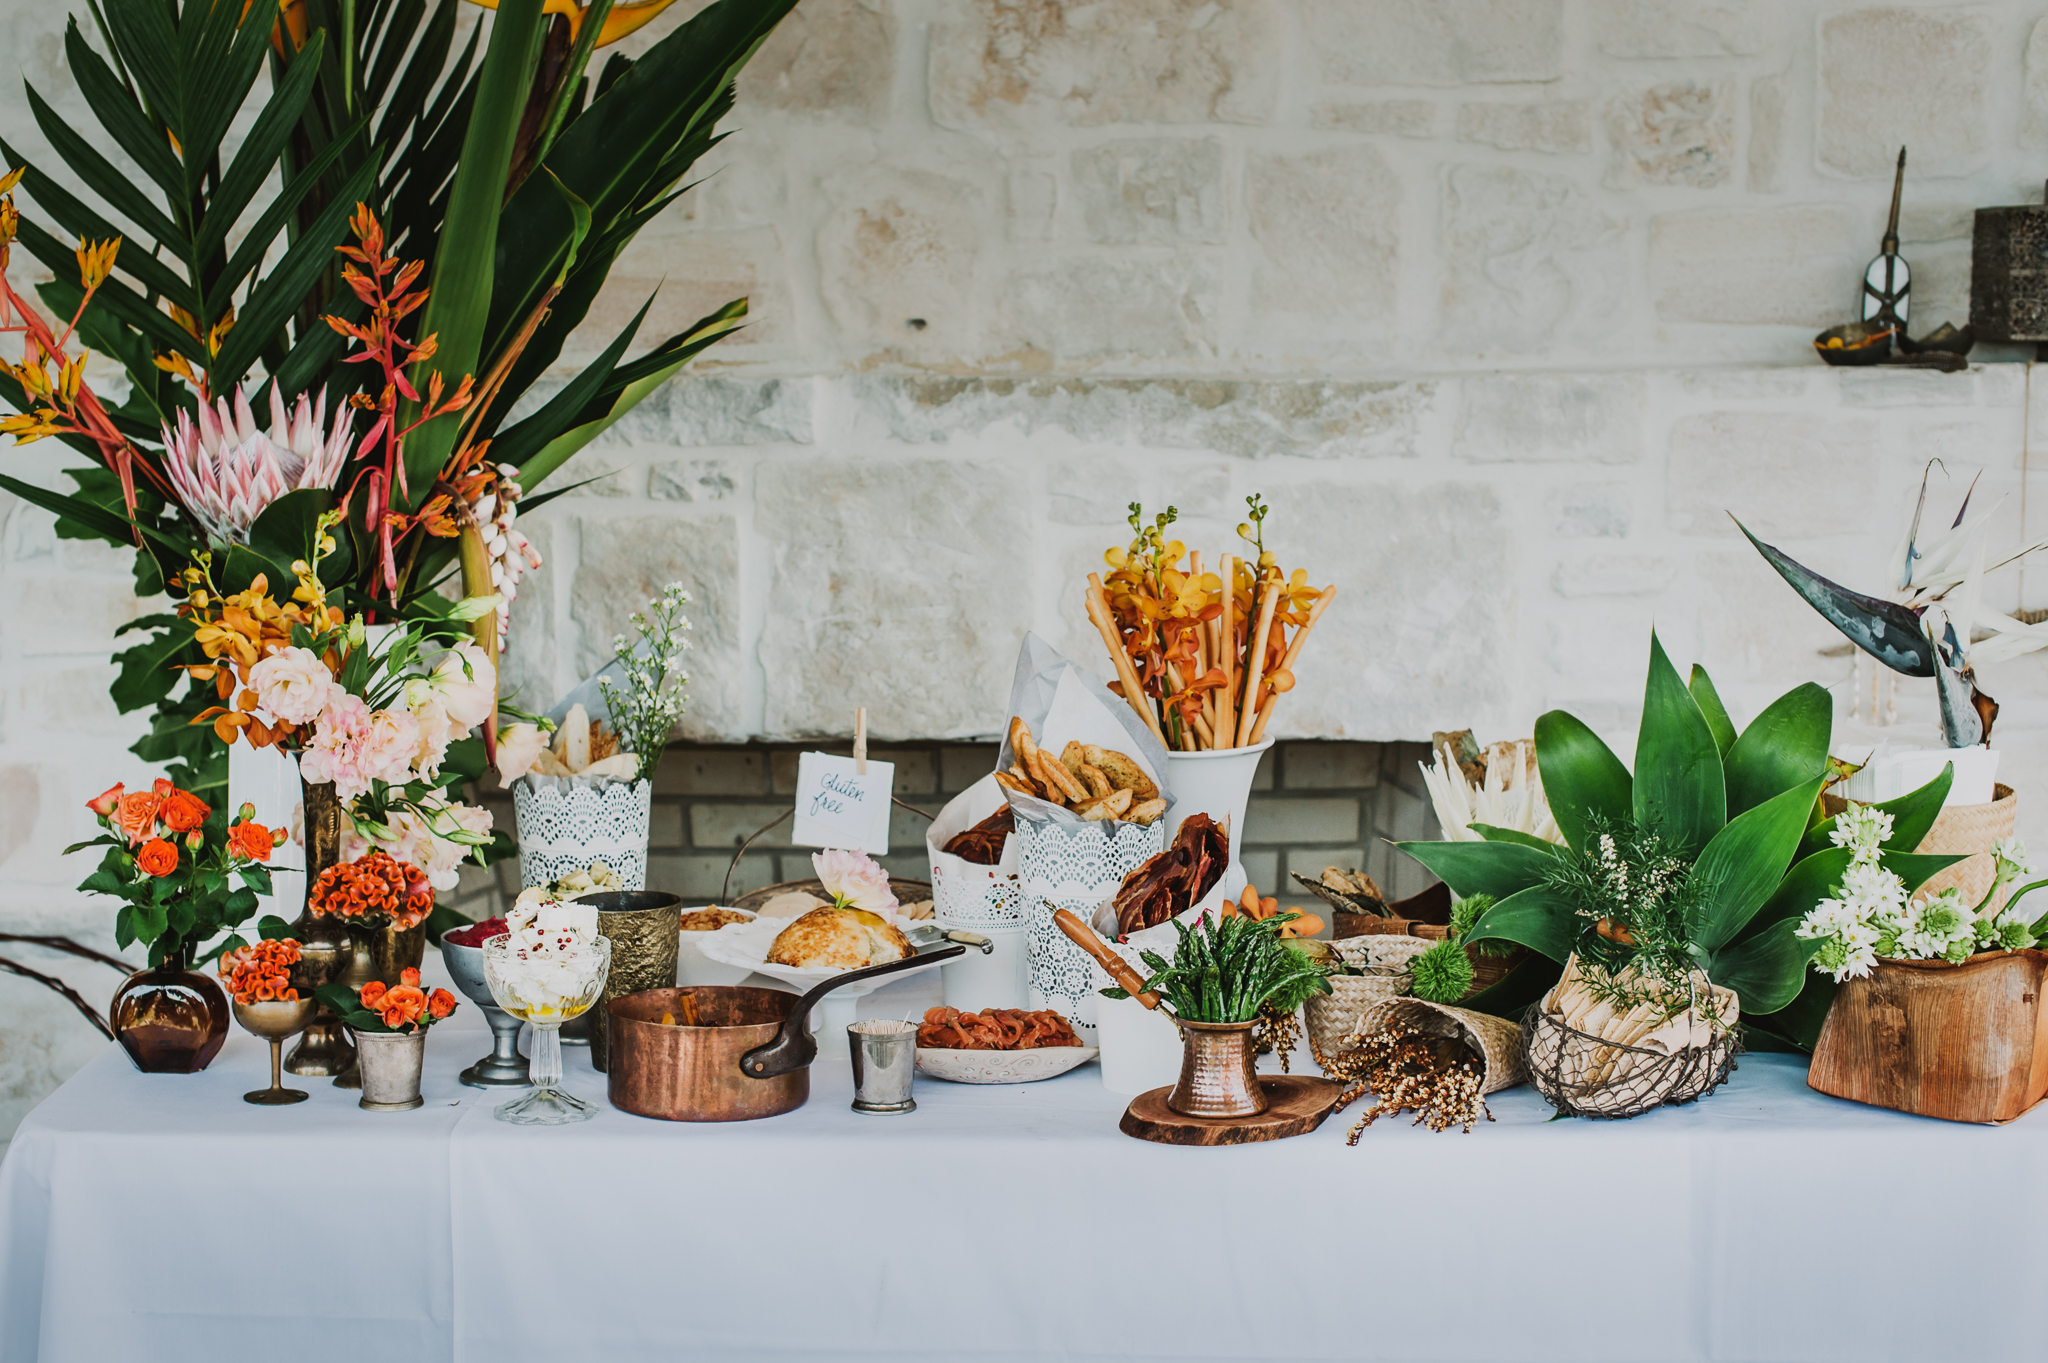 Eat Drink Events - Tiff + Terepai Byron Bay Wedding - by Lucy Spartalis of She Takes Pictures He Makes Films WEB SIZED-01.jpg